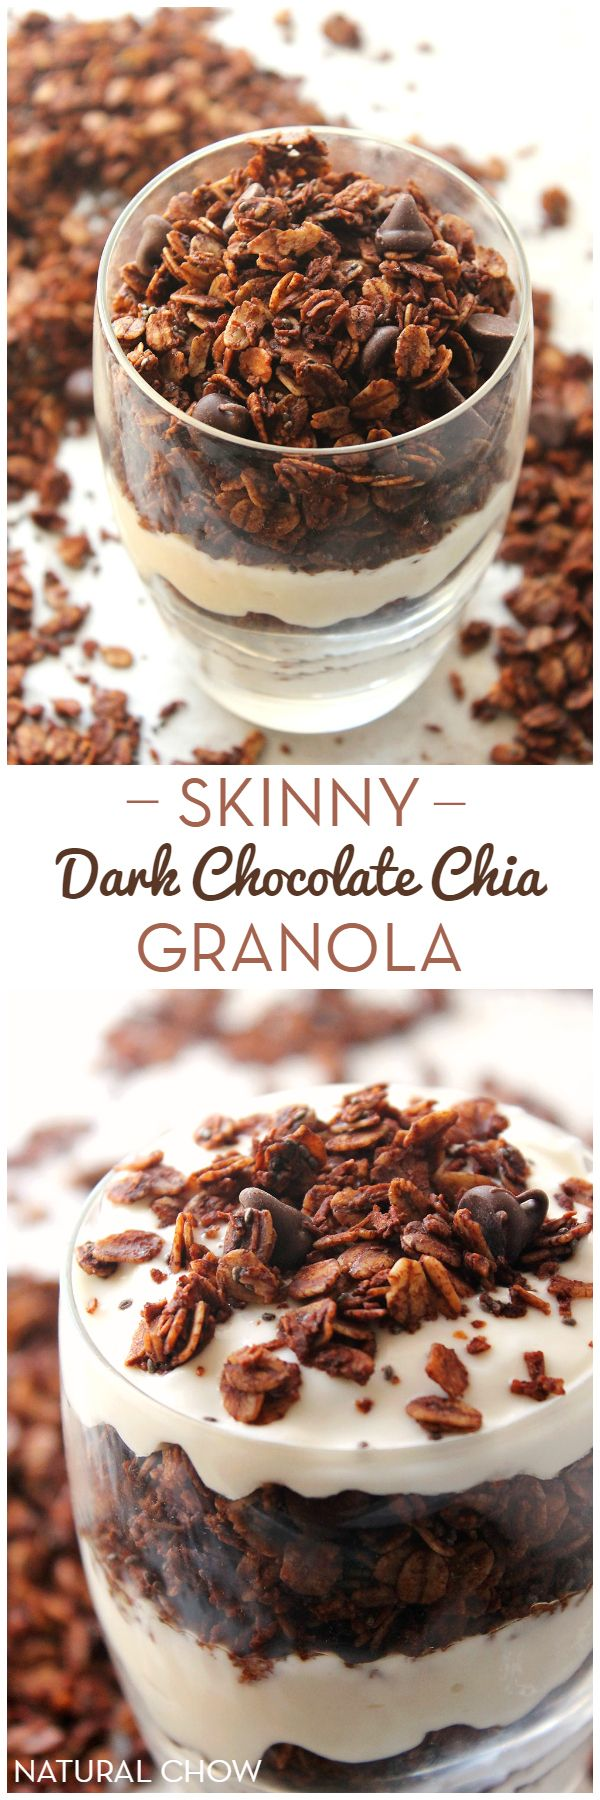 Who says breakfast can't be indulgent? This skinny dark chocolate chia granola has an intense chocolate flavor and is perfectly crunchy and sweet.